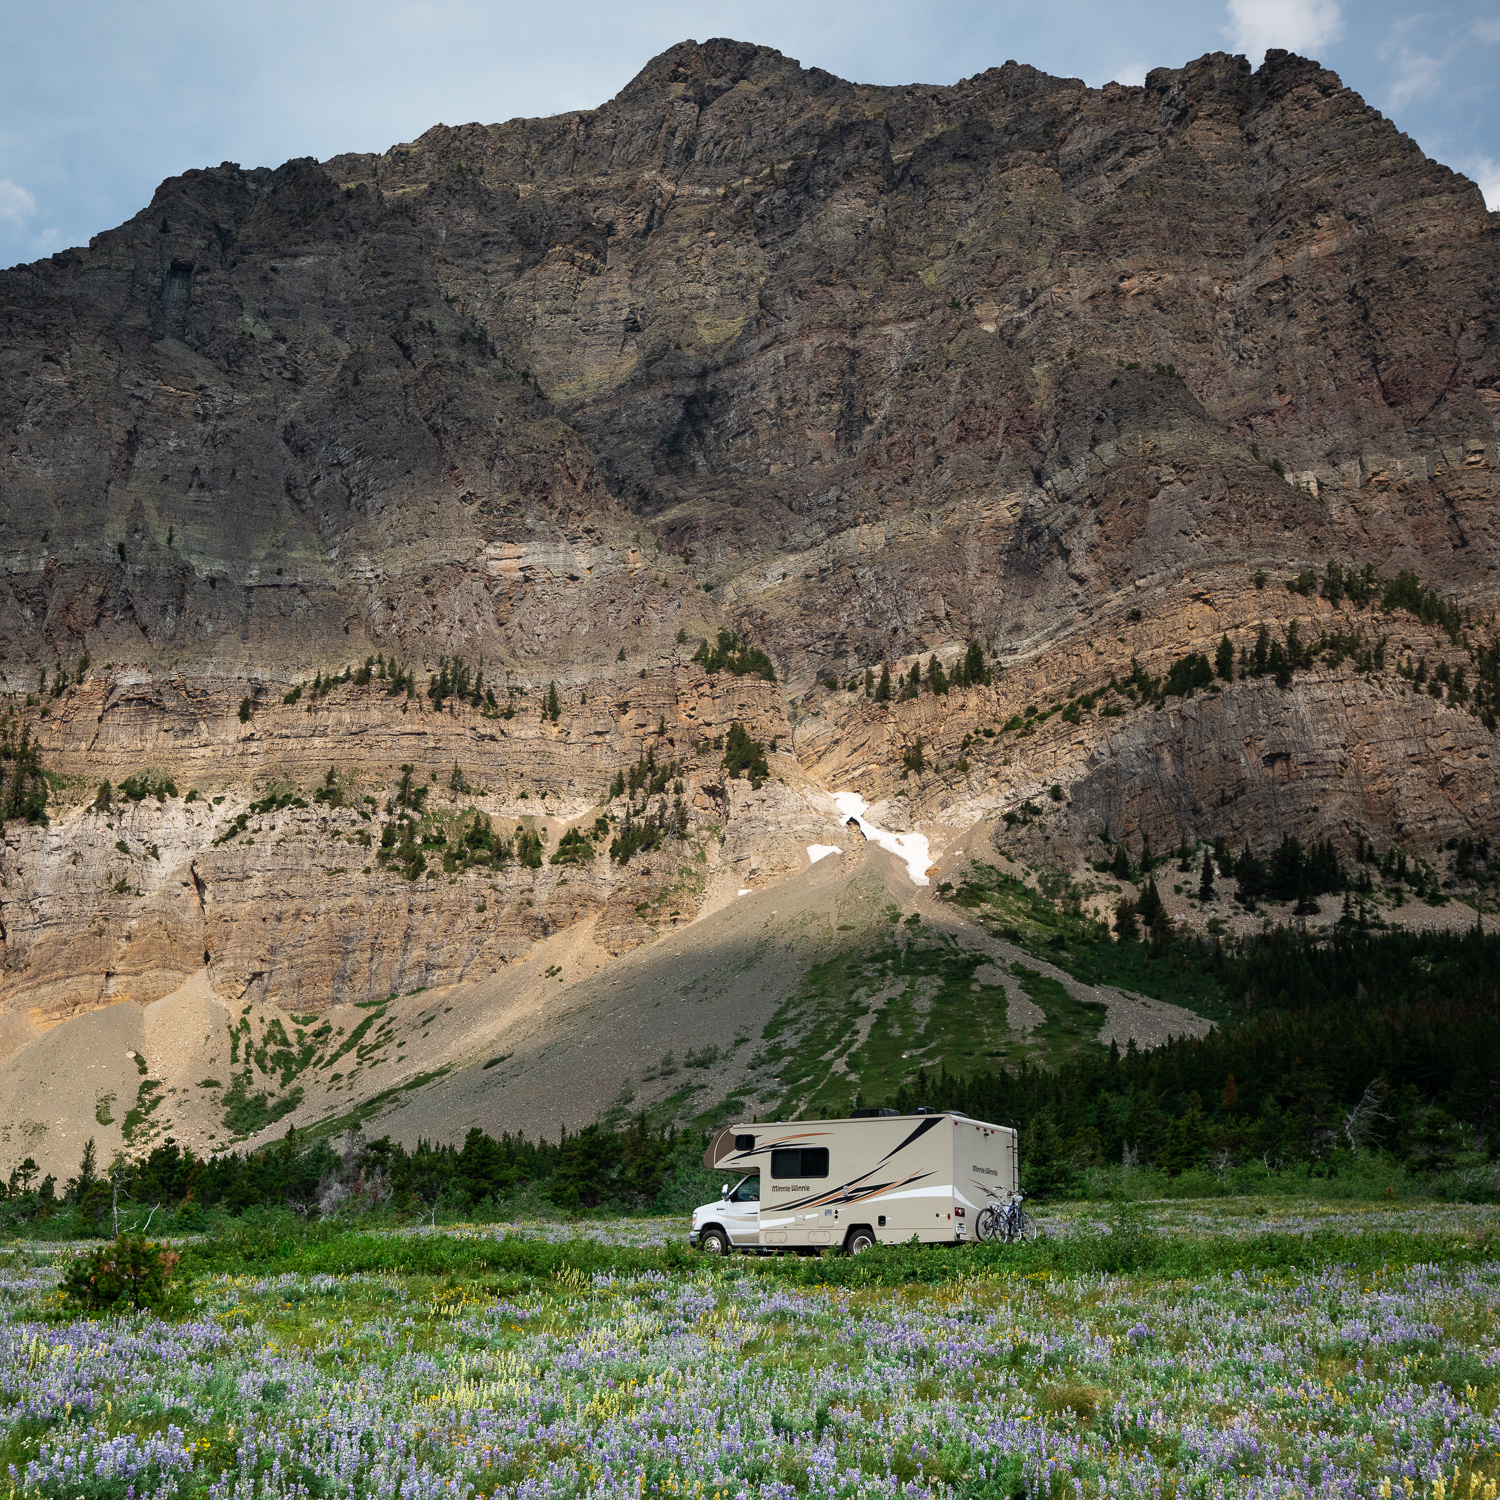 An RV on its way to Many Glacier region of Glacier National Park.